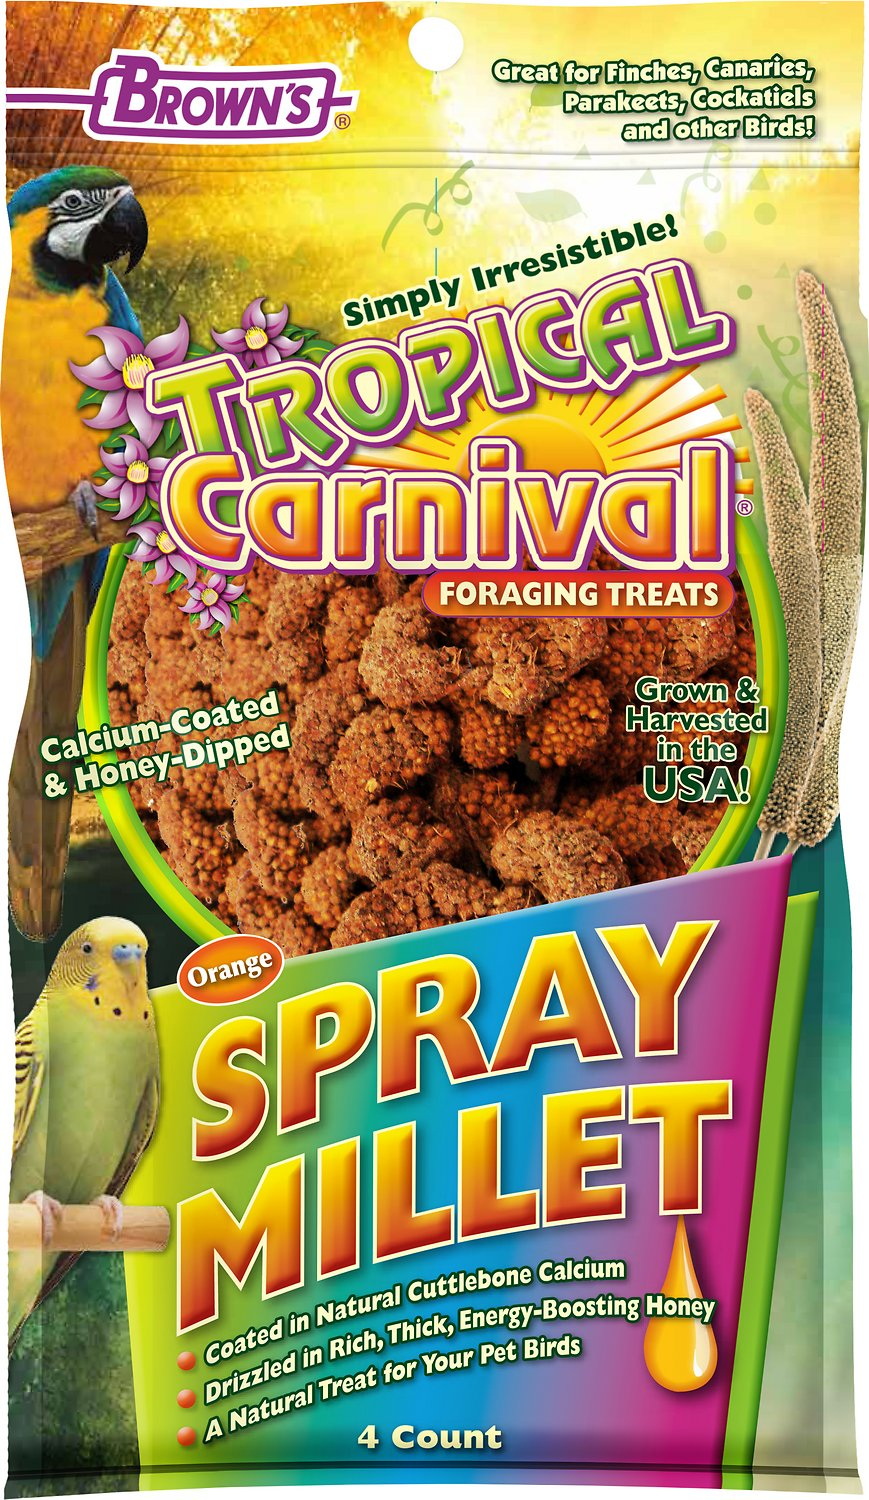 Brown's Tropical Carnival Calcium Coated & Honey Dipped Spray Millet Treats, 4 count